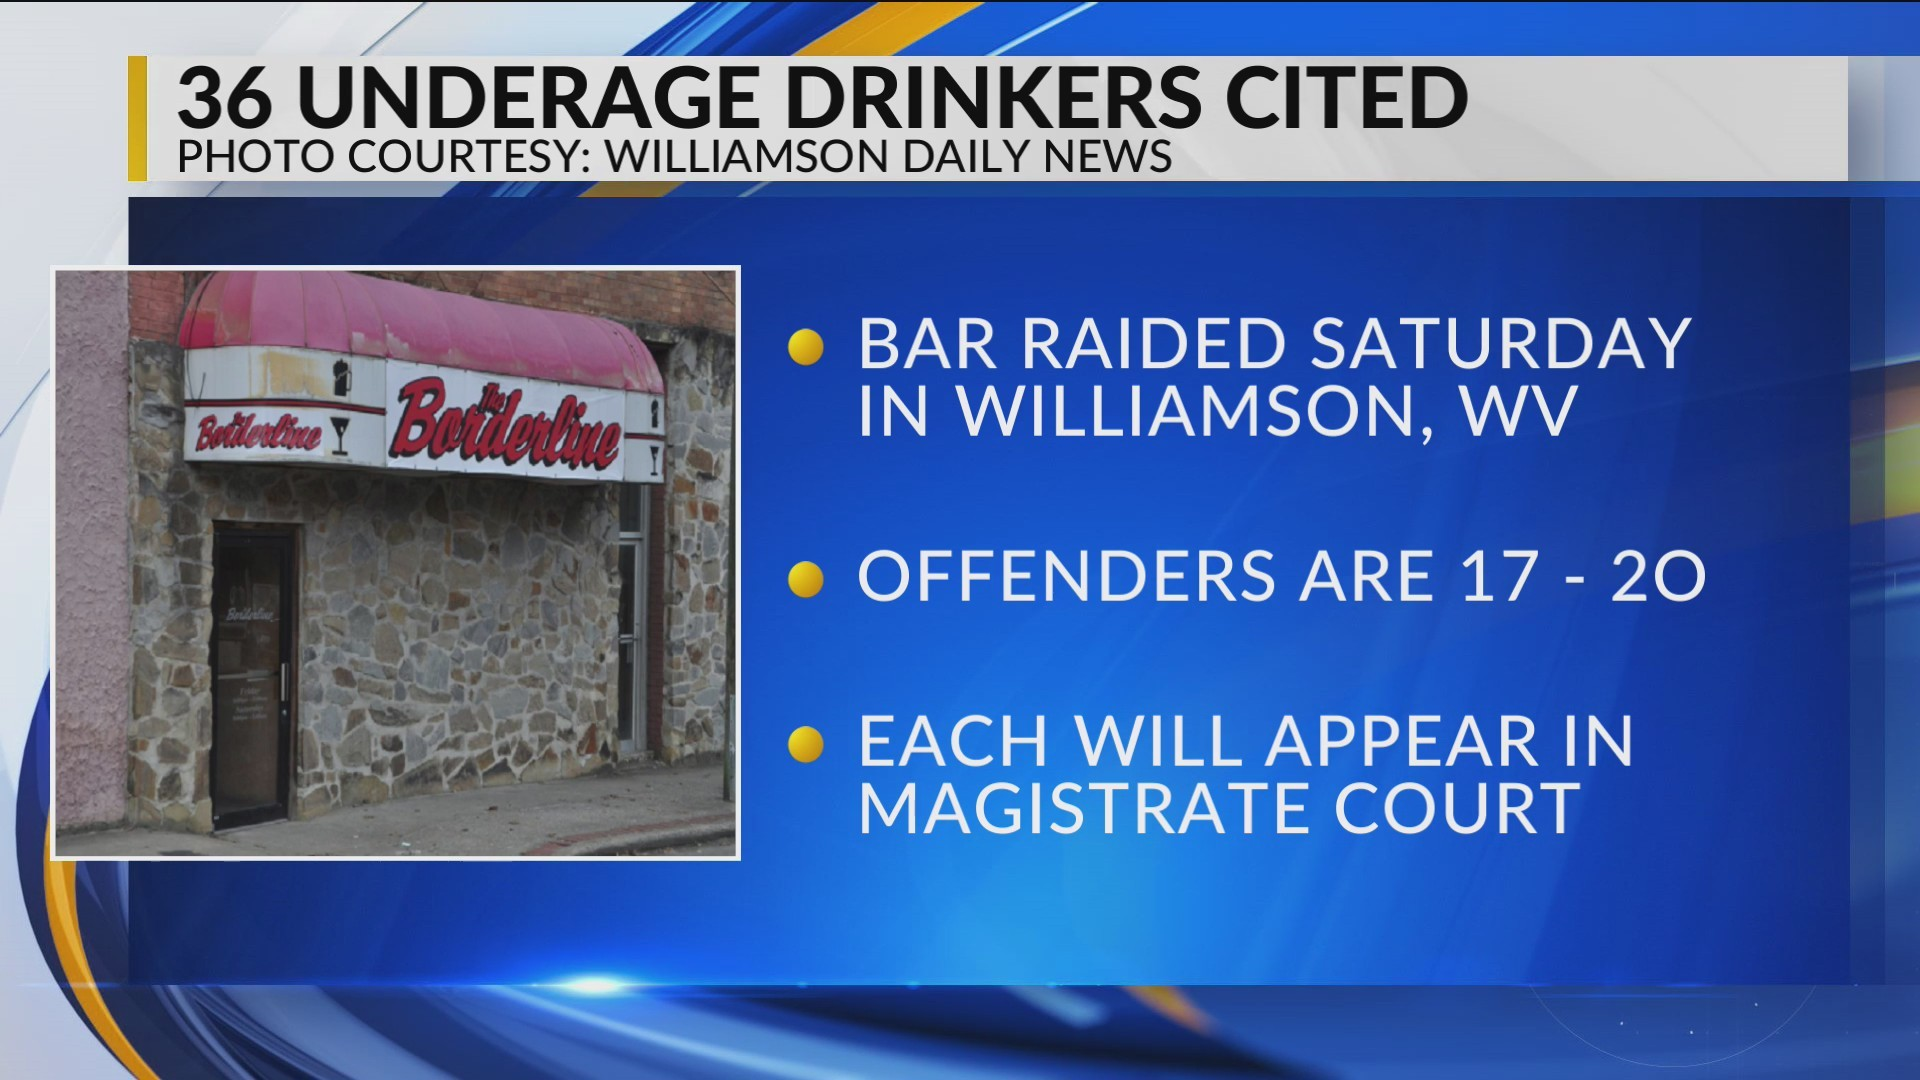 Report: Williamson bar Raided, 36 Underage Drinkers Cited